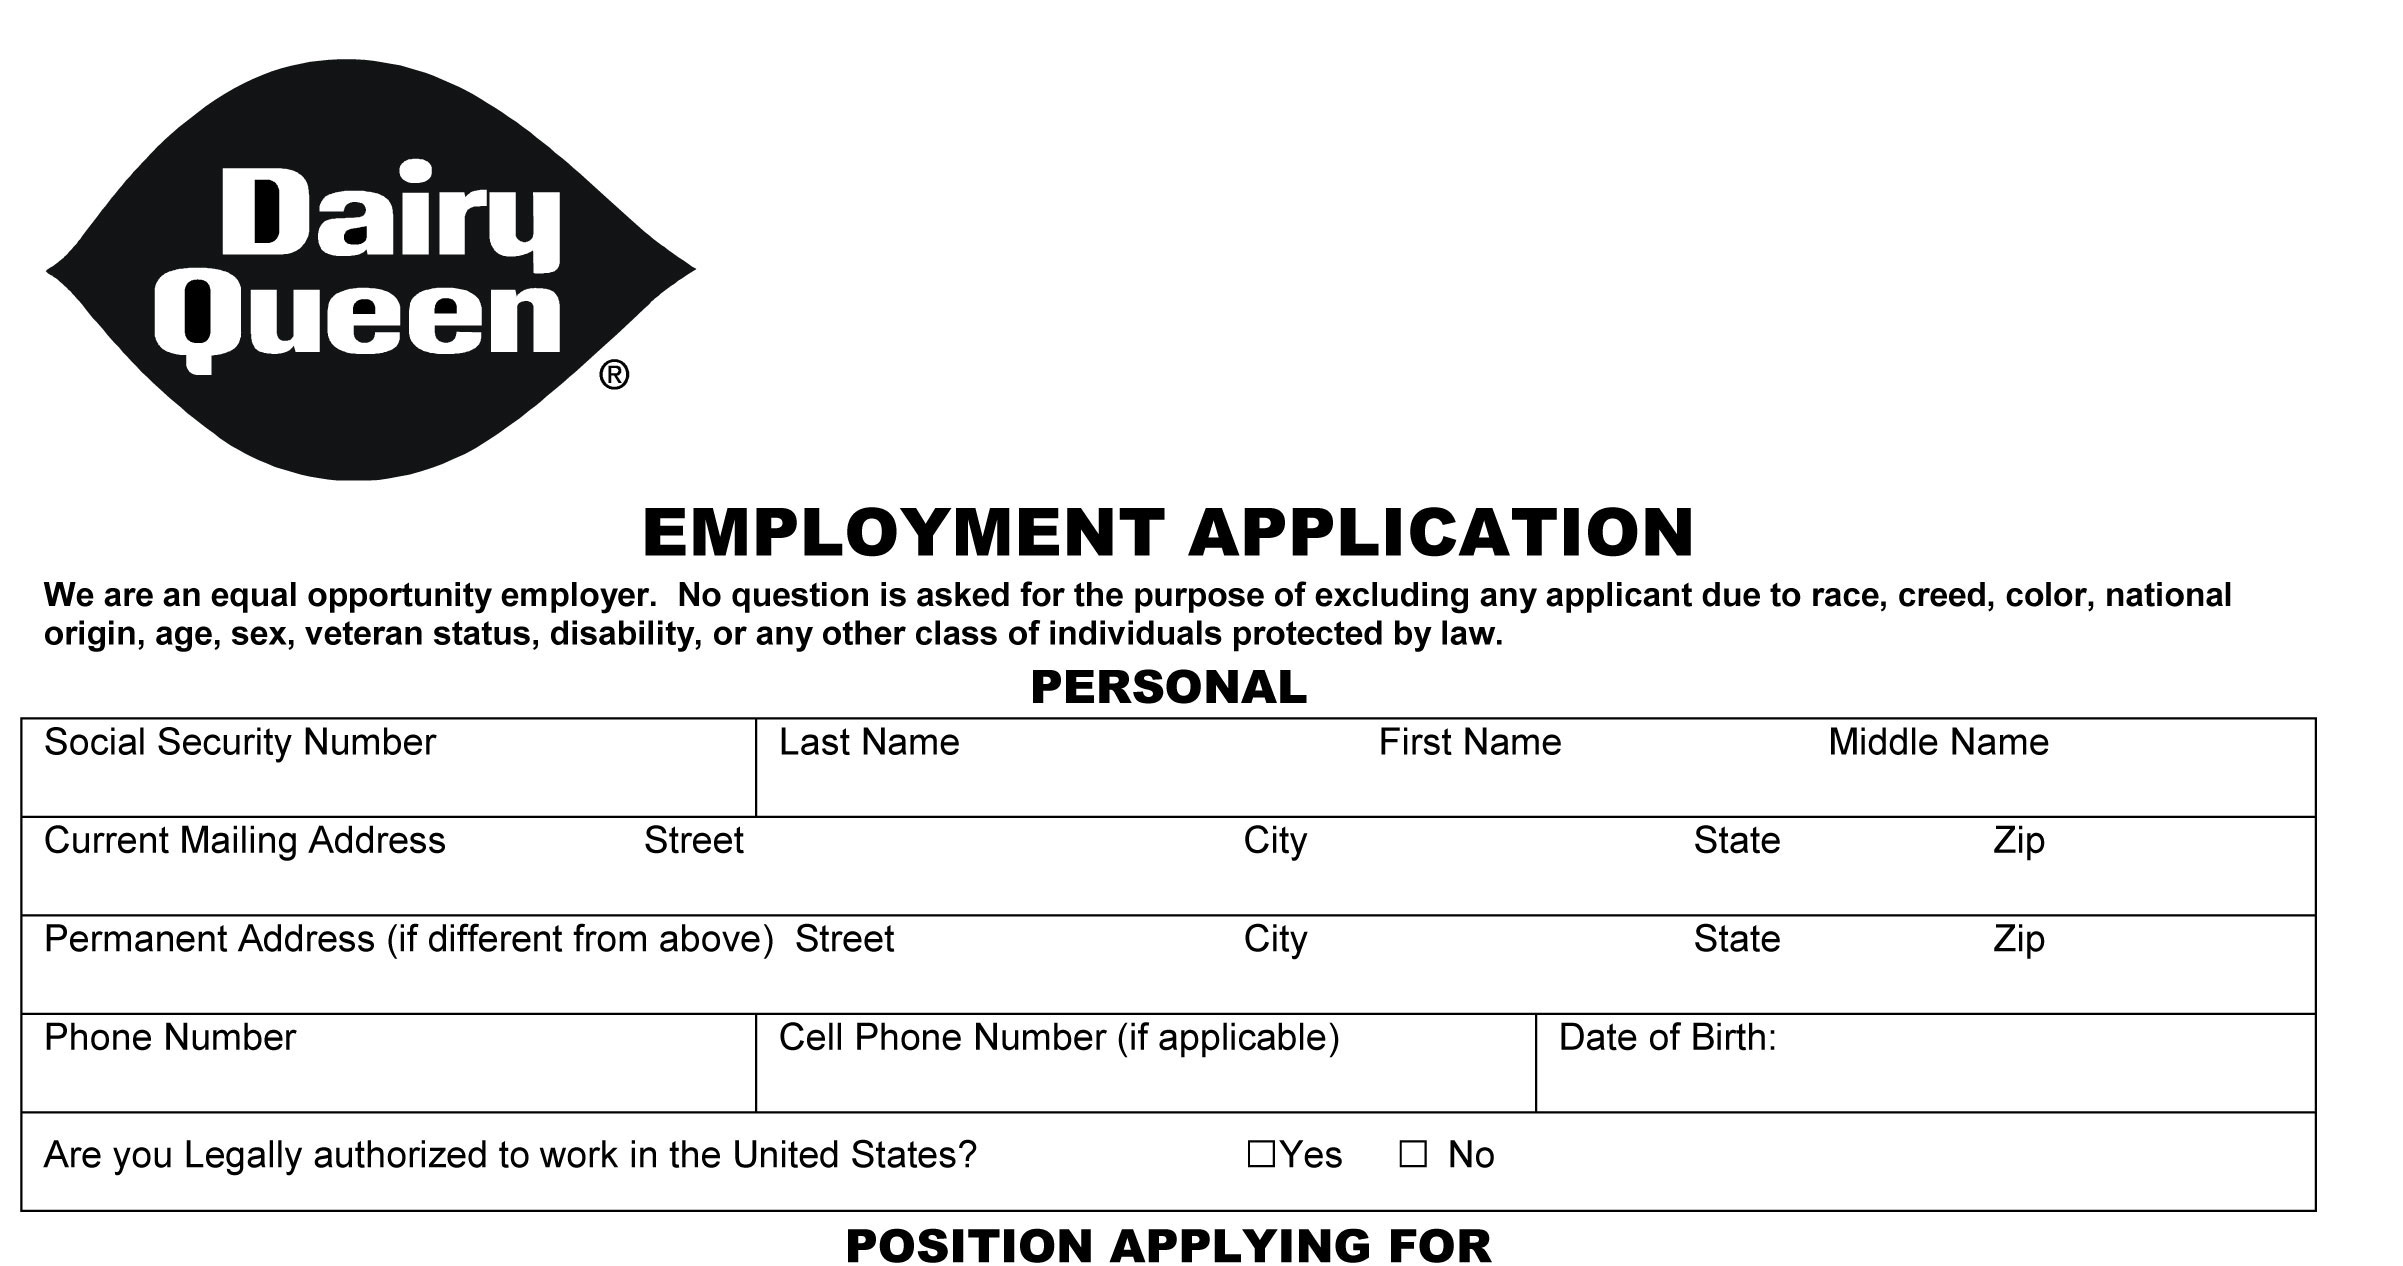 dairy queen application form pdf  Dairy Queen Job Application - Printable Job Employment Forms